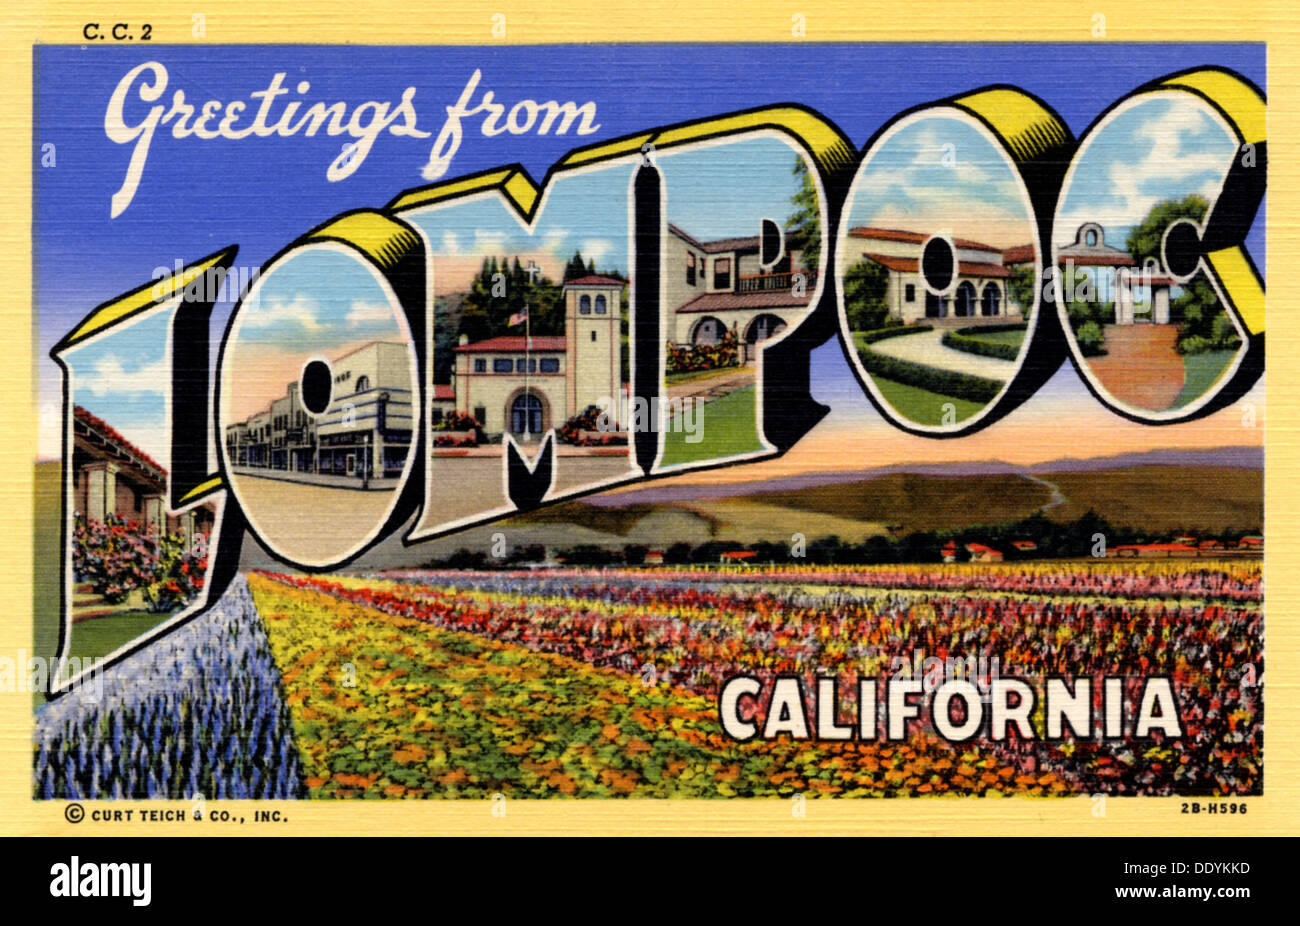 Greetings from lompoc california postcard 1942 stock photo greetings from lompoc california postcard 1942 m4hsunfo